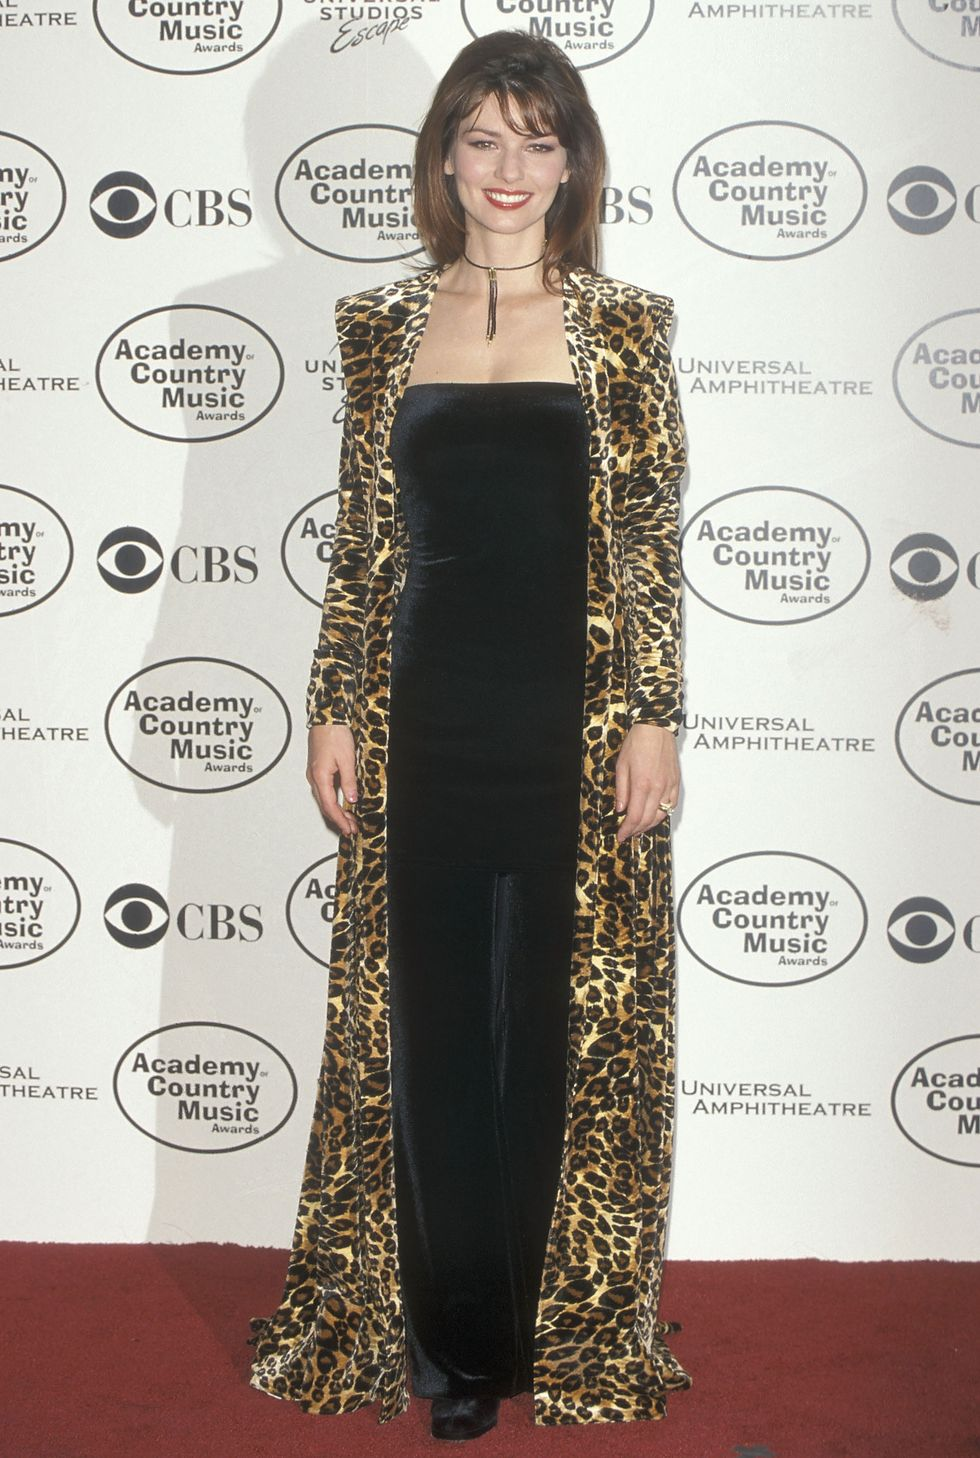 UNIVERSAL CITY, CA - MAY 5:   Singer Shania Twain attends the 34th Annual Academy of Country Music Awards on May 5, 1999 at the Universal Amphitheatre in Universal City, California. (Photo by Ron Galella, Ltd./WireImage)